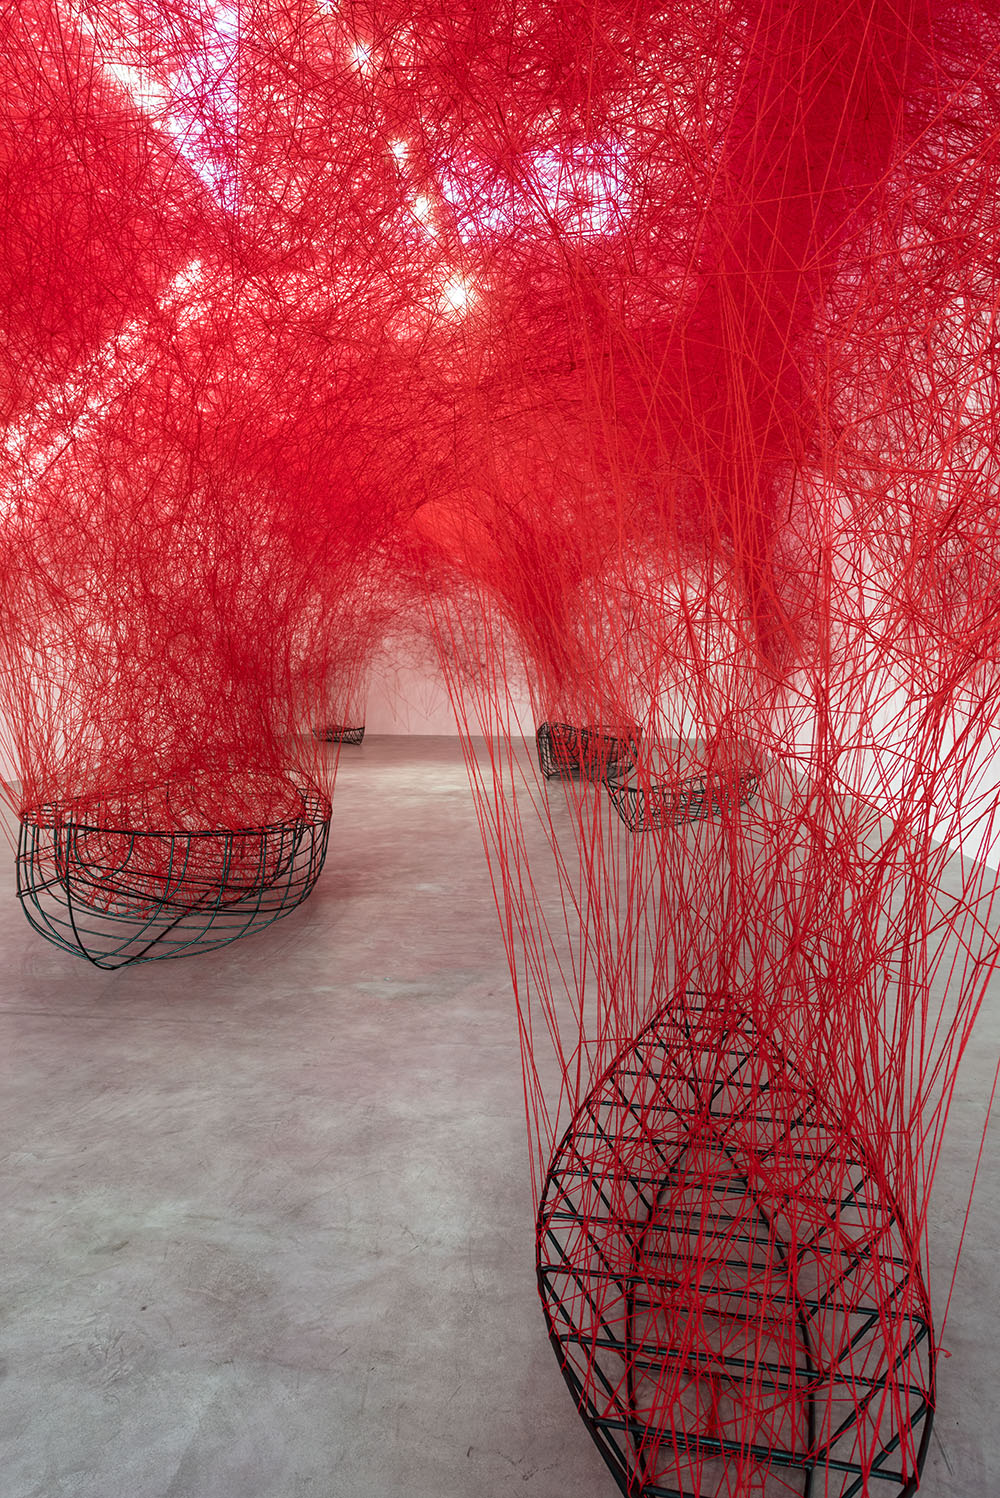 Uncertain Journey: A Flotilla of Wireframe Boats Overflow With a Dense Canopy of Red Yarn